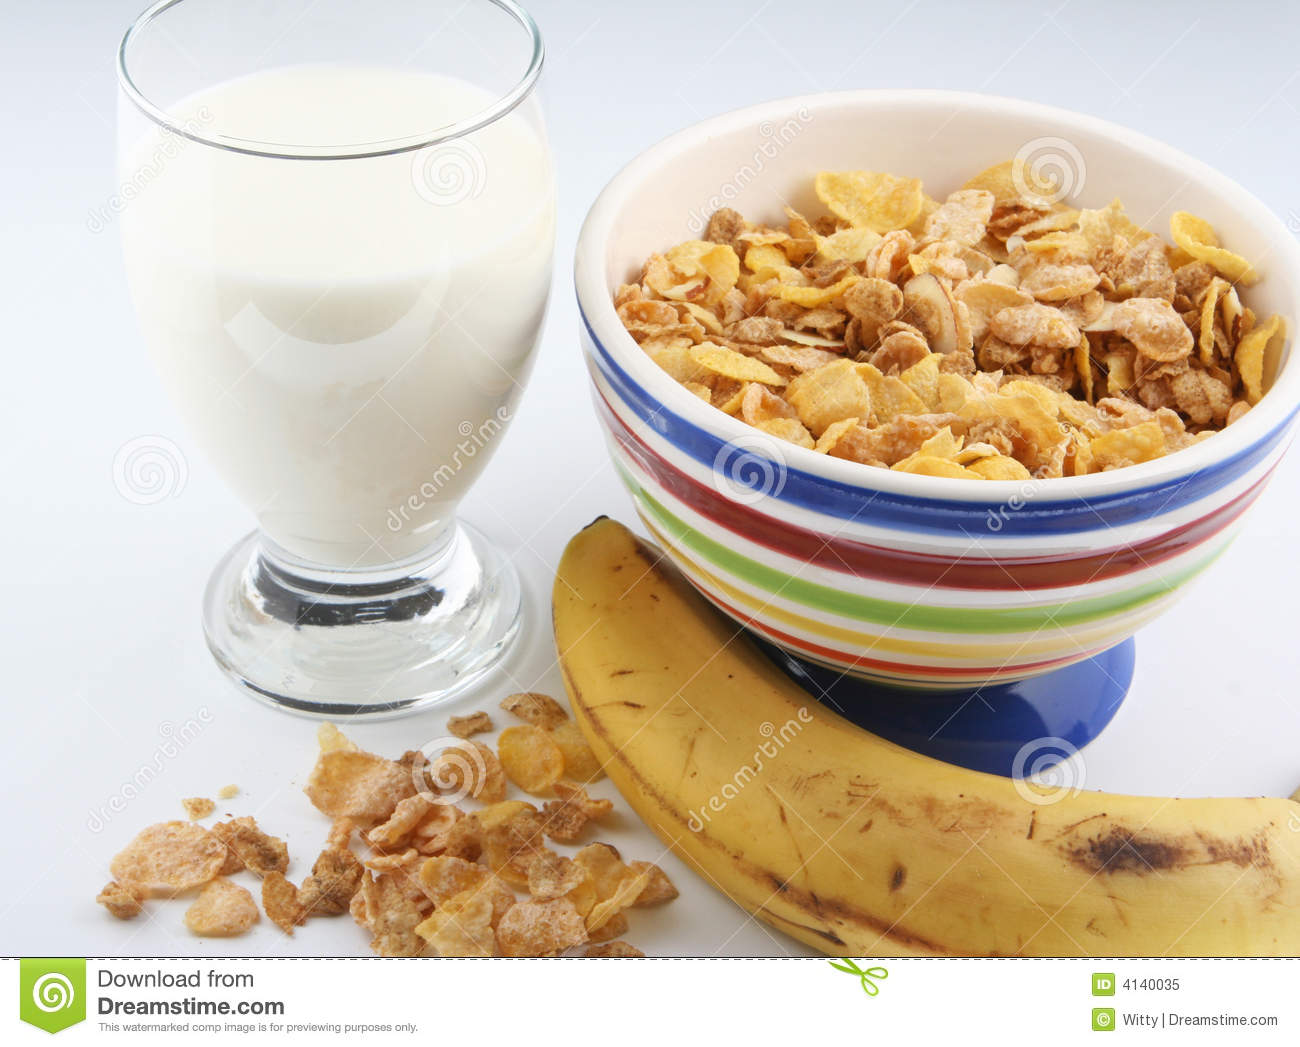 Breakfast of cereal, milk, and banana.